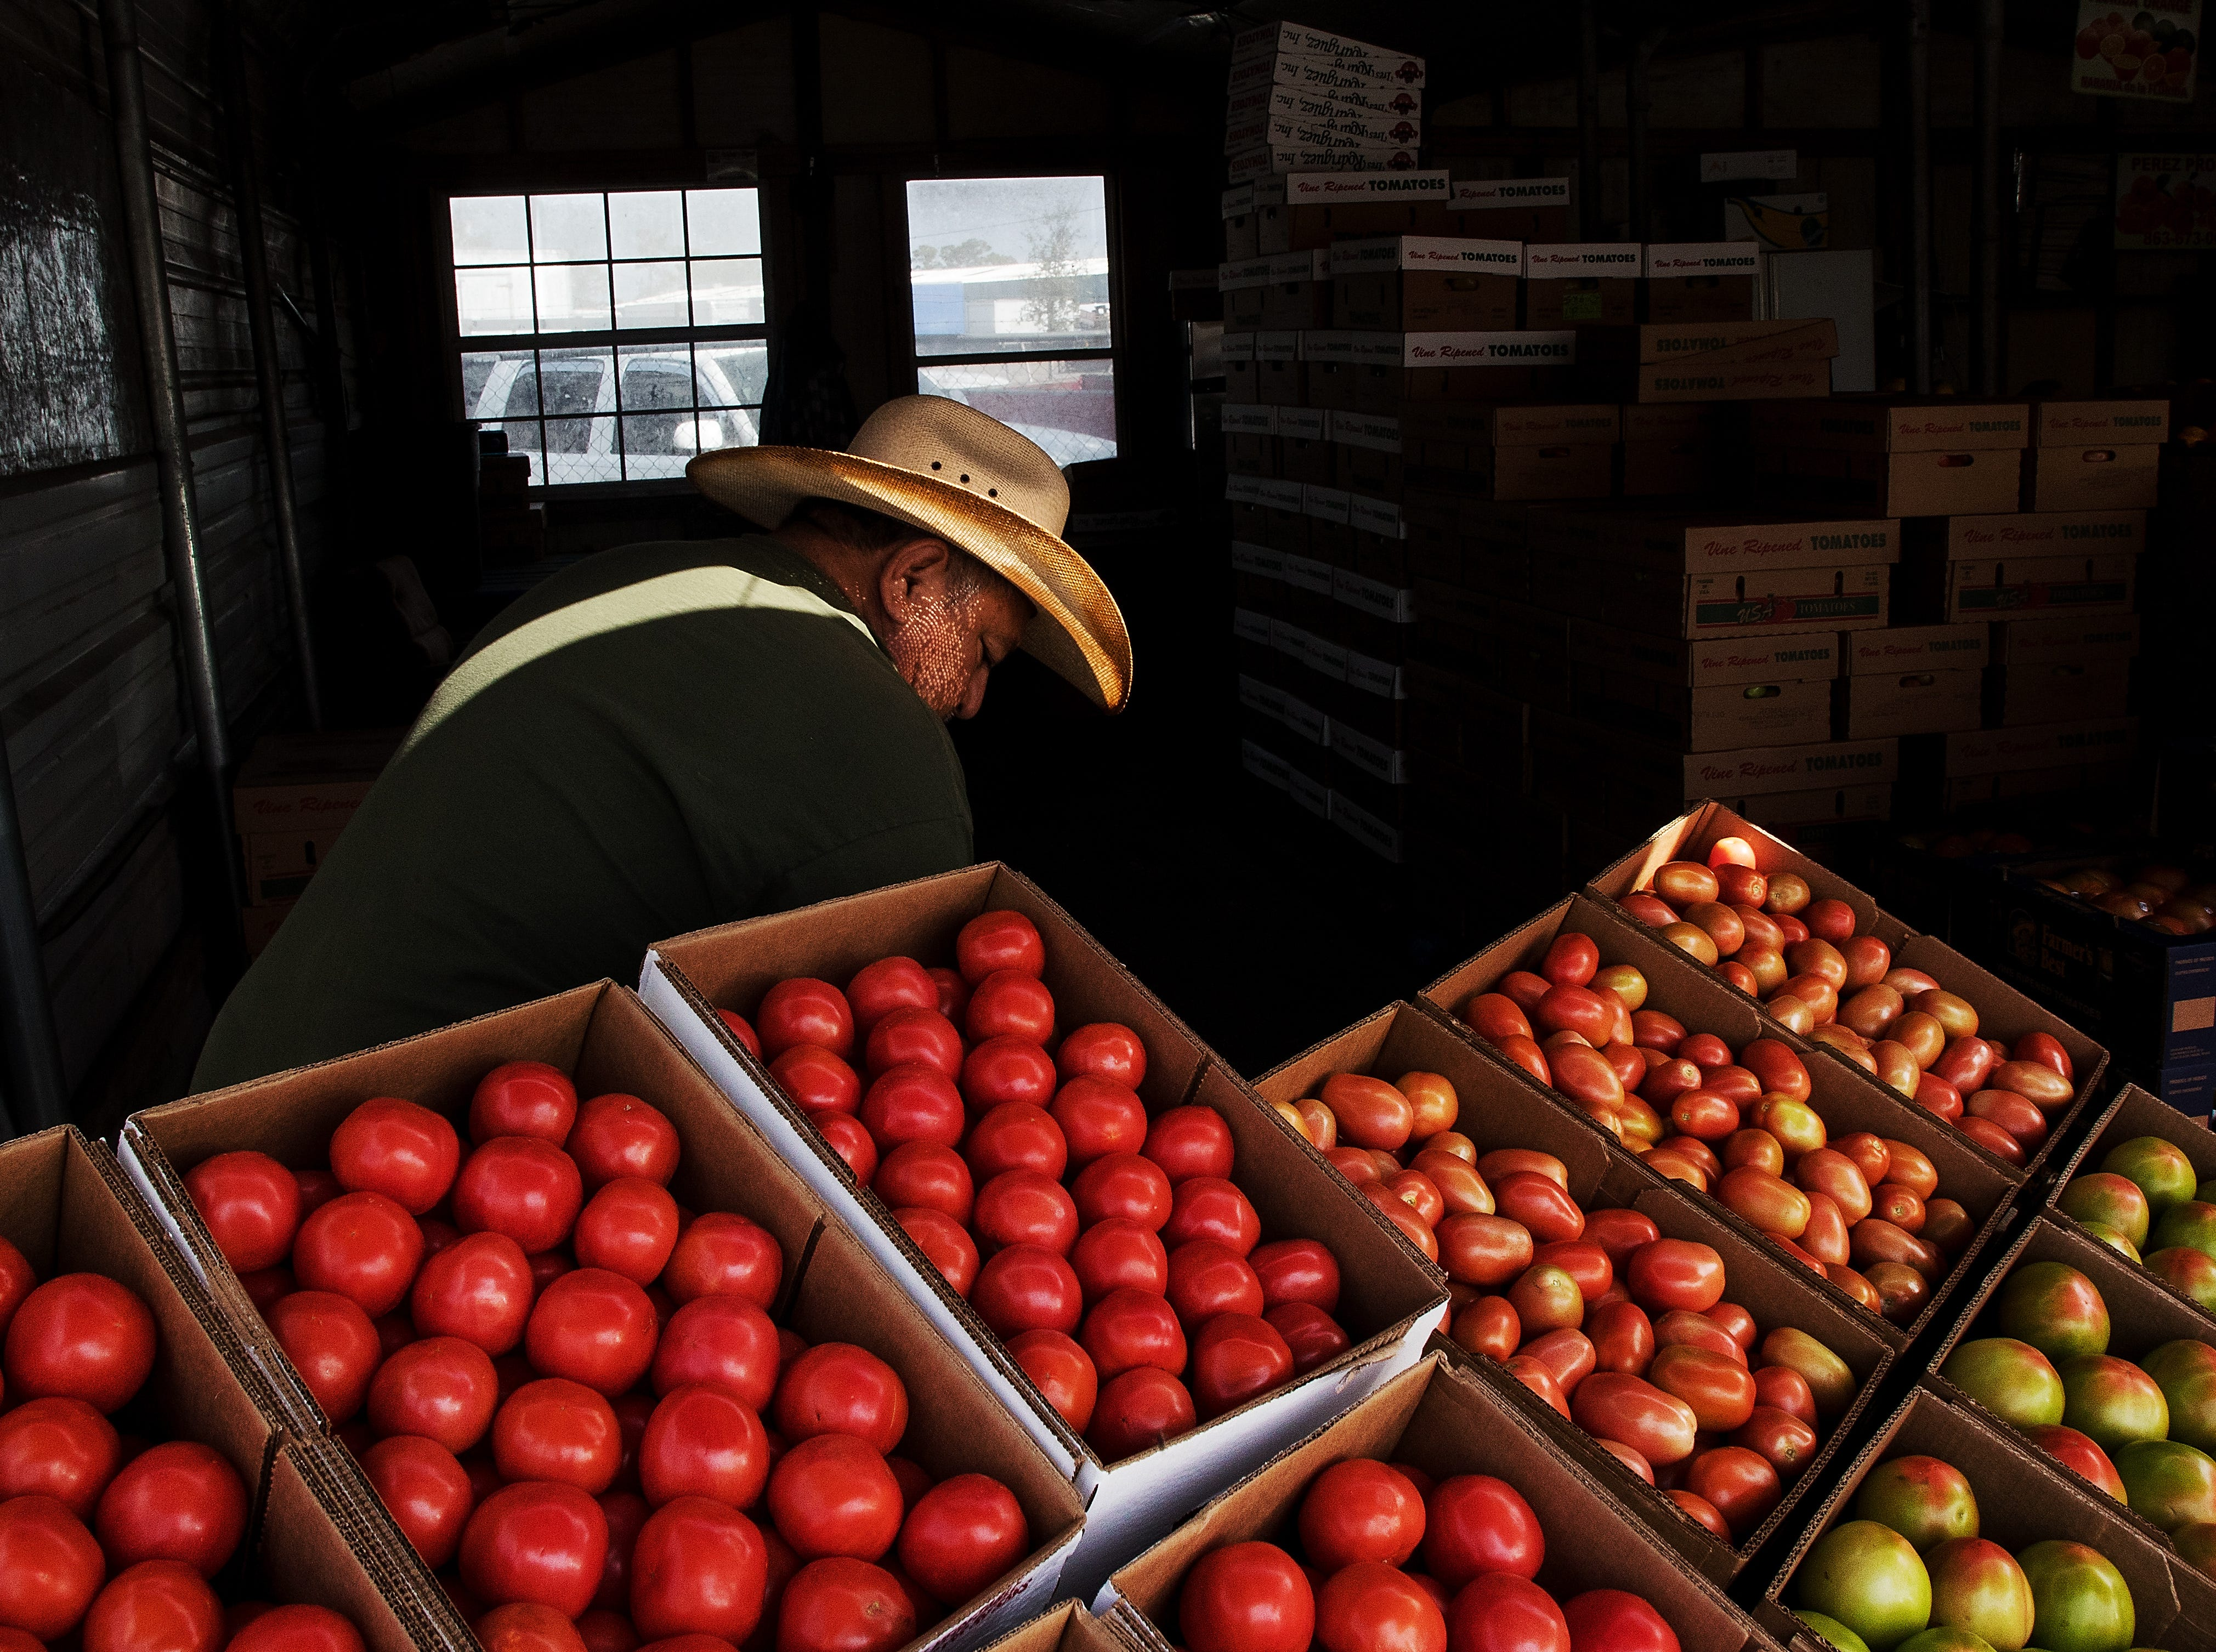 David Flores shifts his display of Immokalee tomatoes at the Farmer's Market in Immokalee on Thursday 1/31/2019.